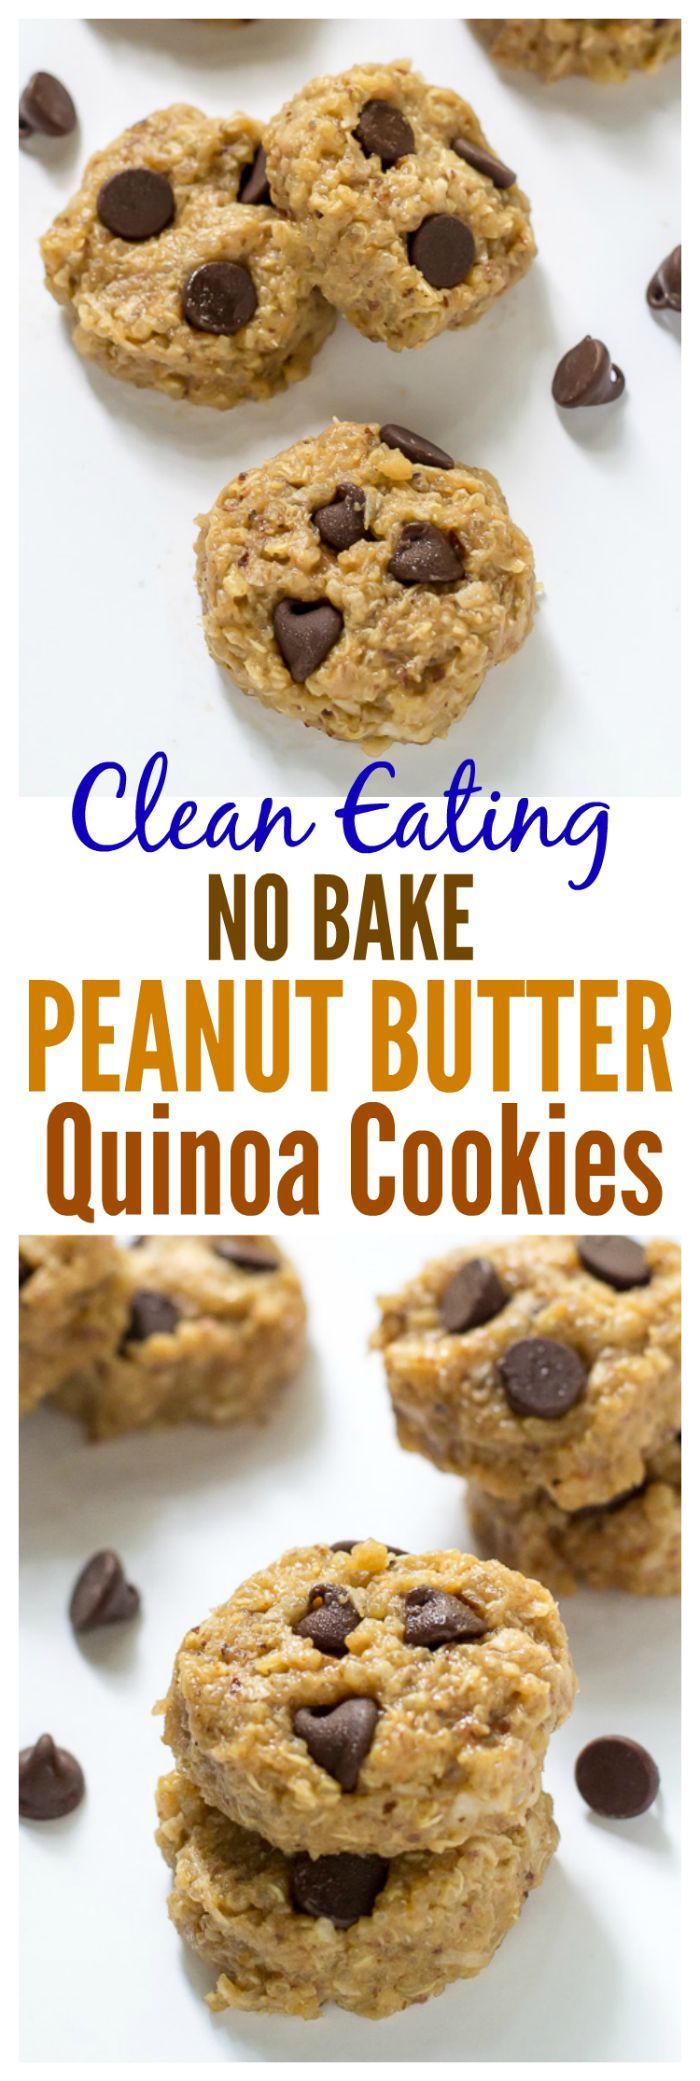 Clean Eating No Bake Peanut Butter Quinoa Cookies. Soft and chewy cookies with NO BUTTER and NO FLOUR. Gluten free.